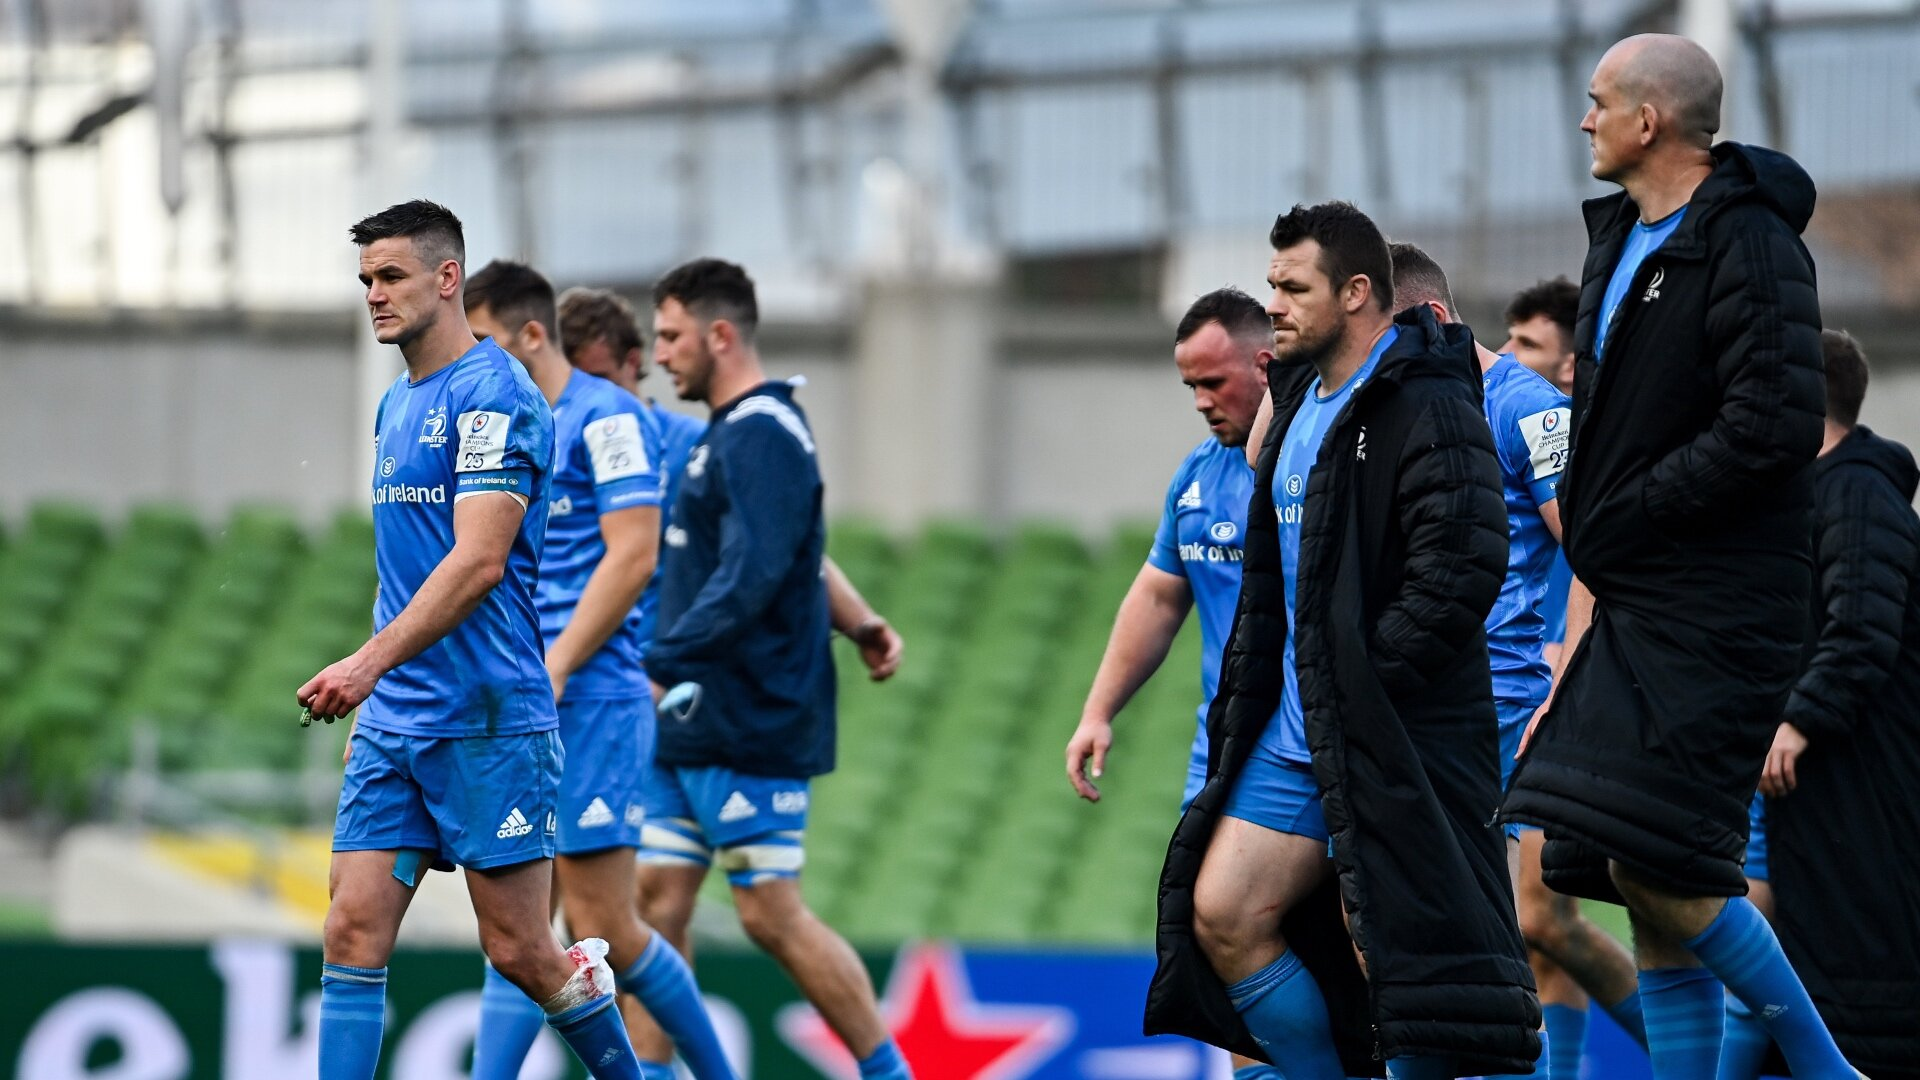 Leinster's shattered invincibility was bruising wake-up call after PRO14 cakewalk